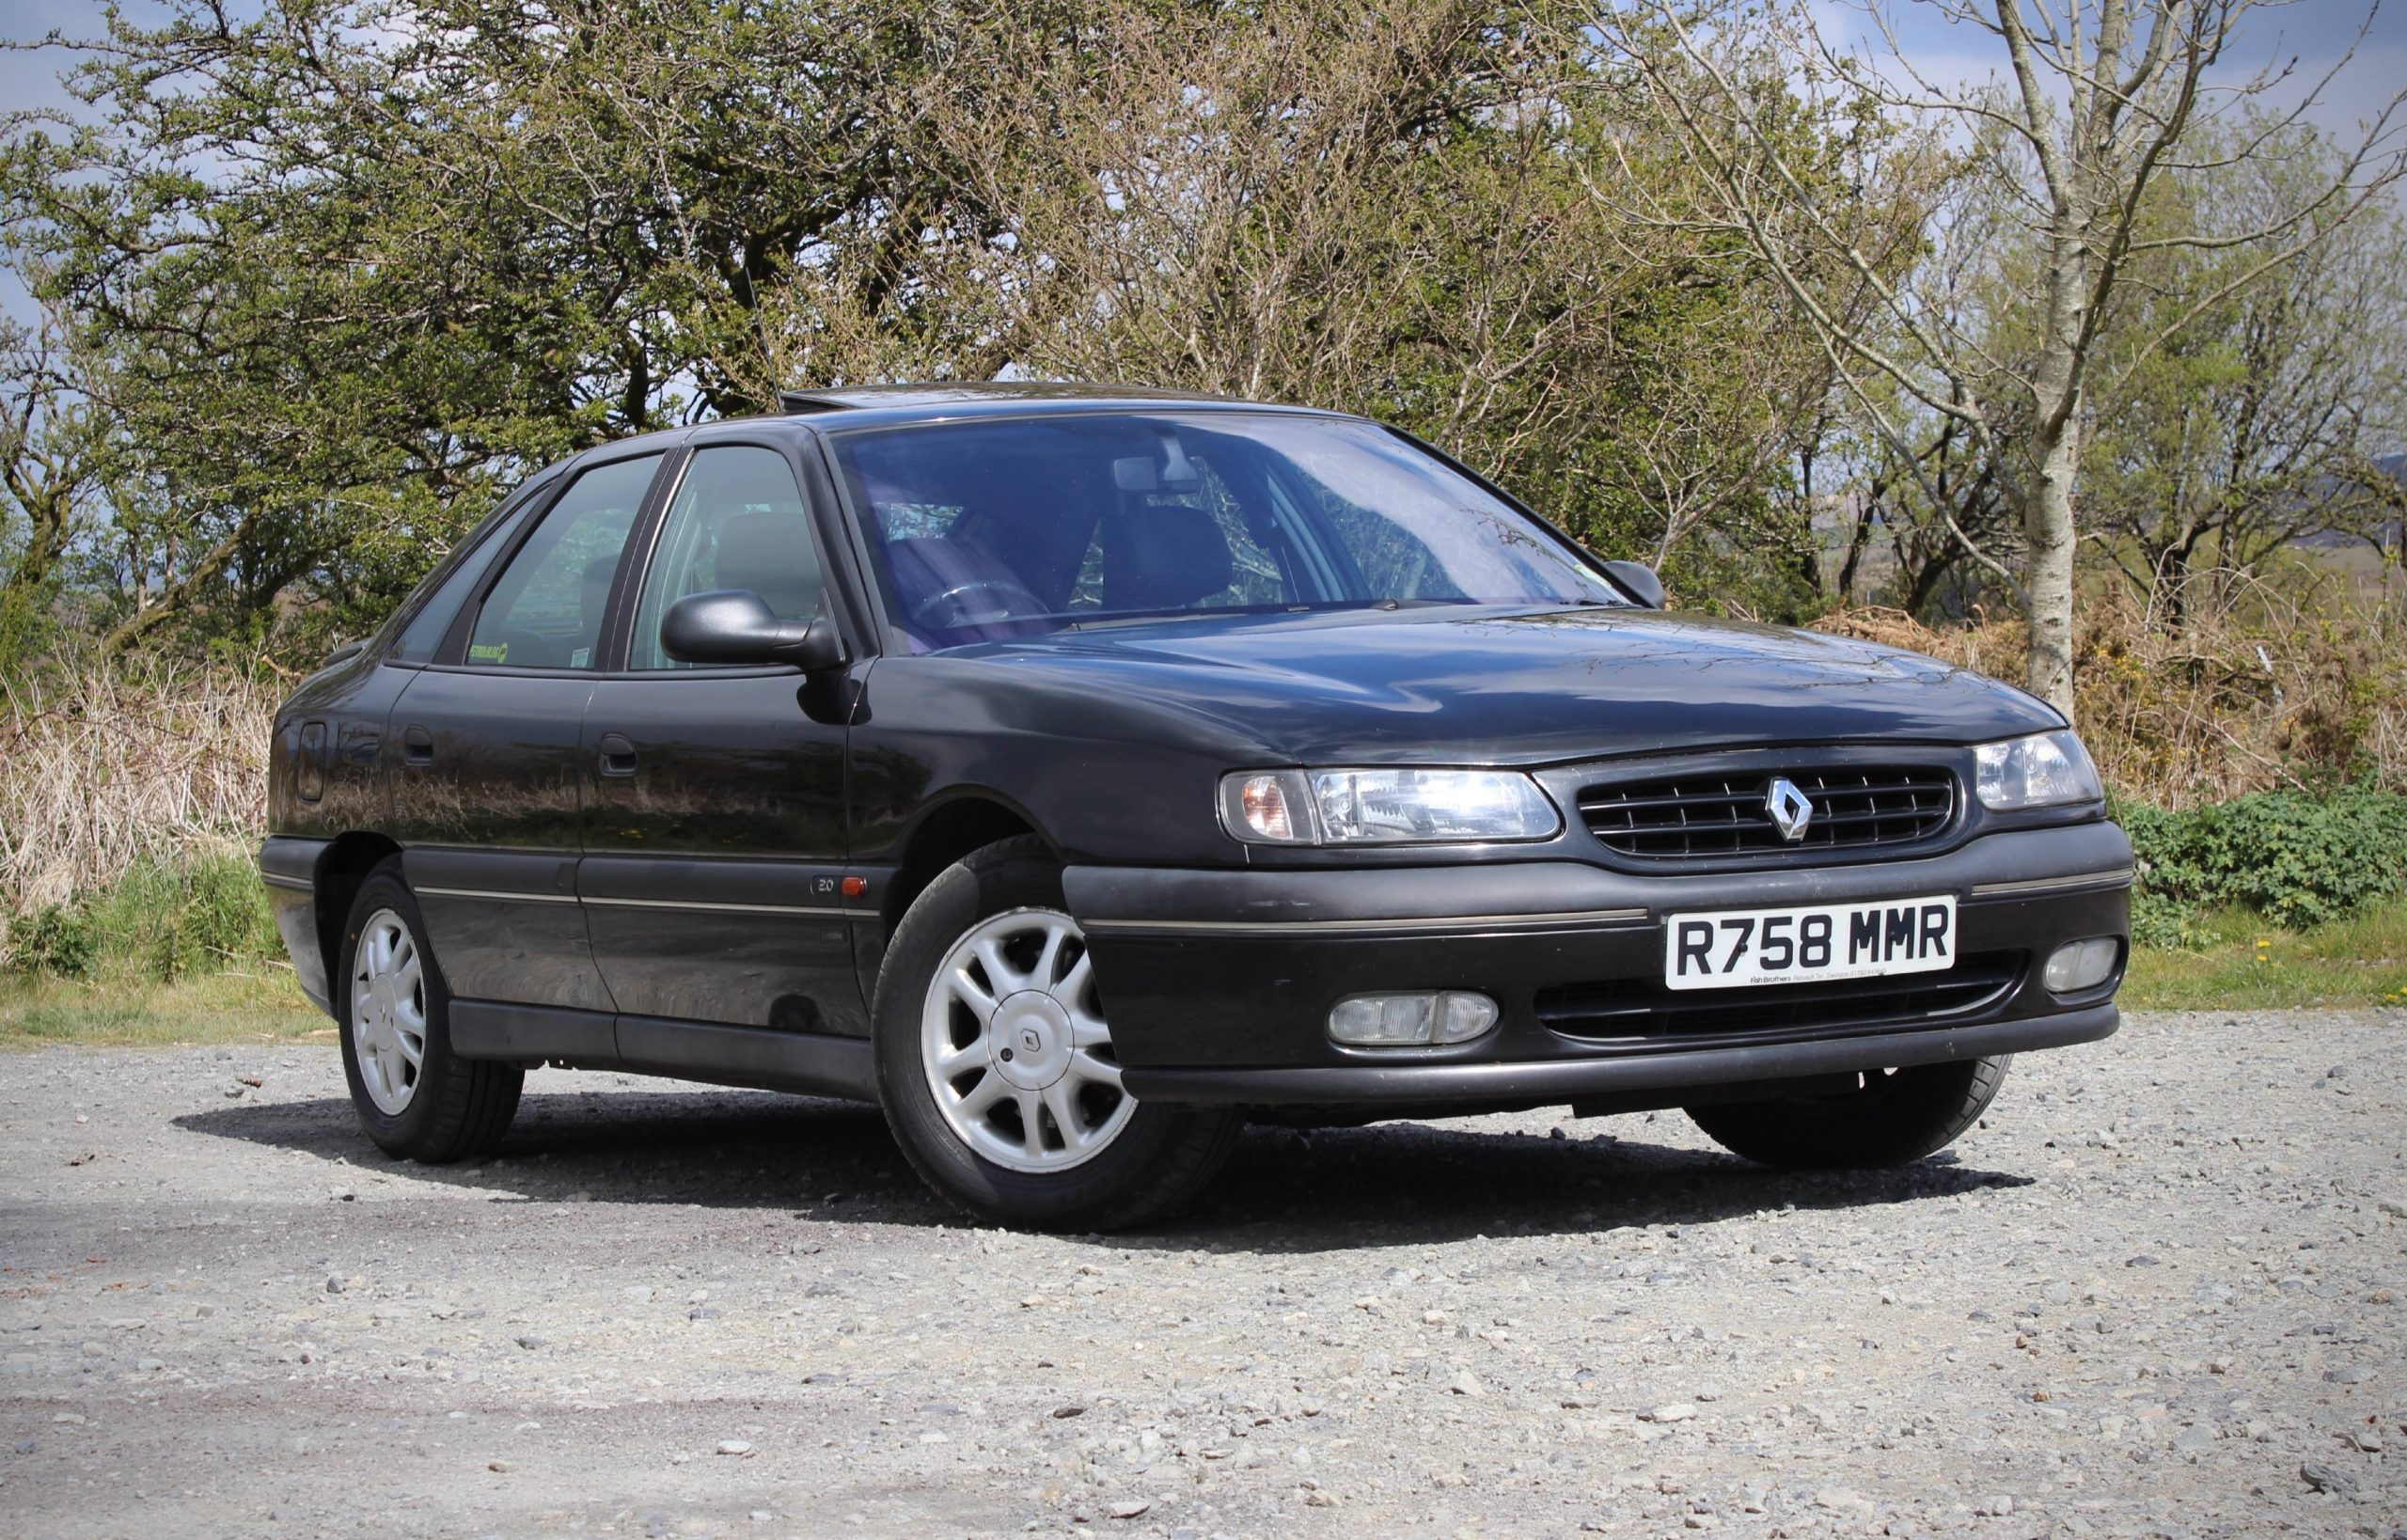 Take a chance on me: The £200 Renault Safrane that paid off